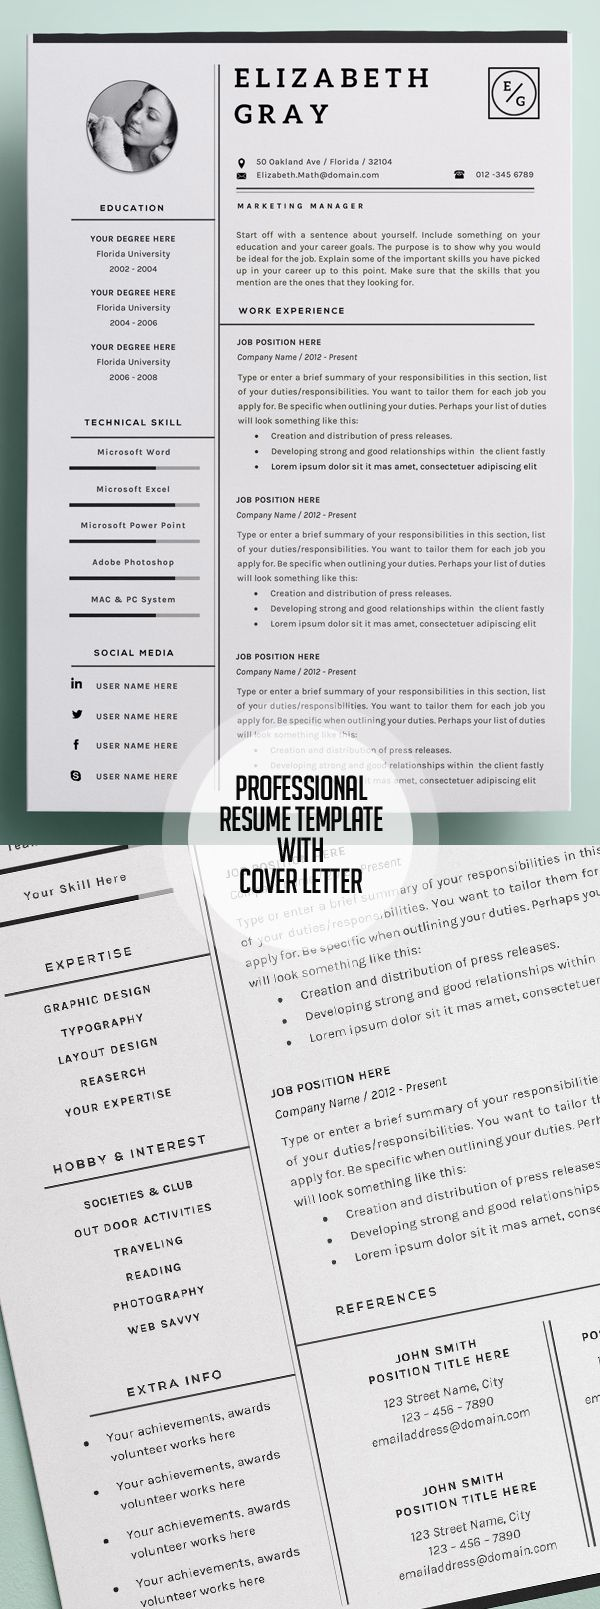 Resume Templates with Cover Letter - Resume design template, Resume template professional, Resume templates, One page resume template, Modern resume template, Cv resume template - Professionally designed and very easy to customize one or two pages resume templates and cover letter + portfolio page  Highquality, creative templates that